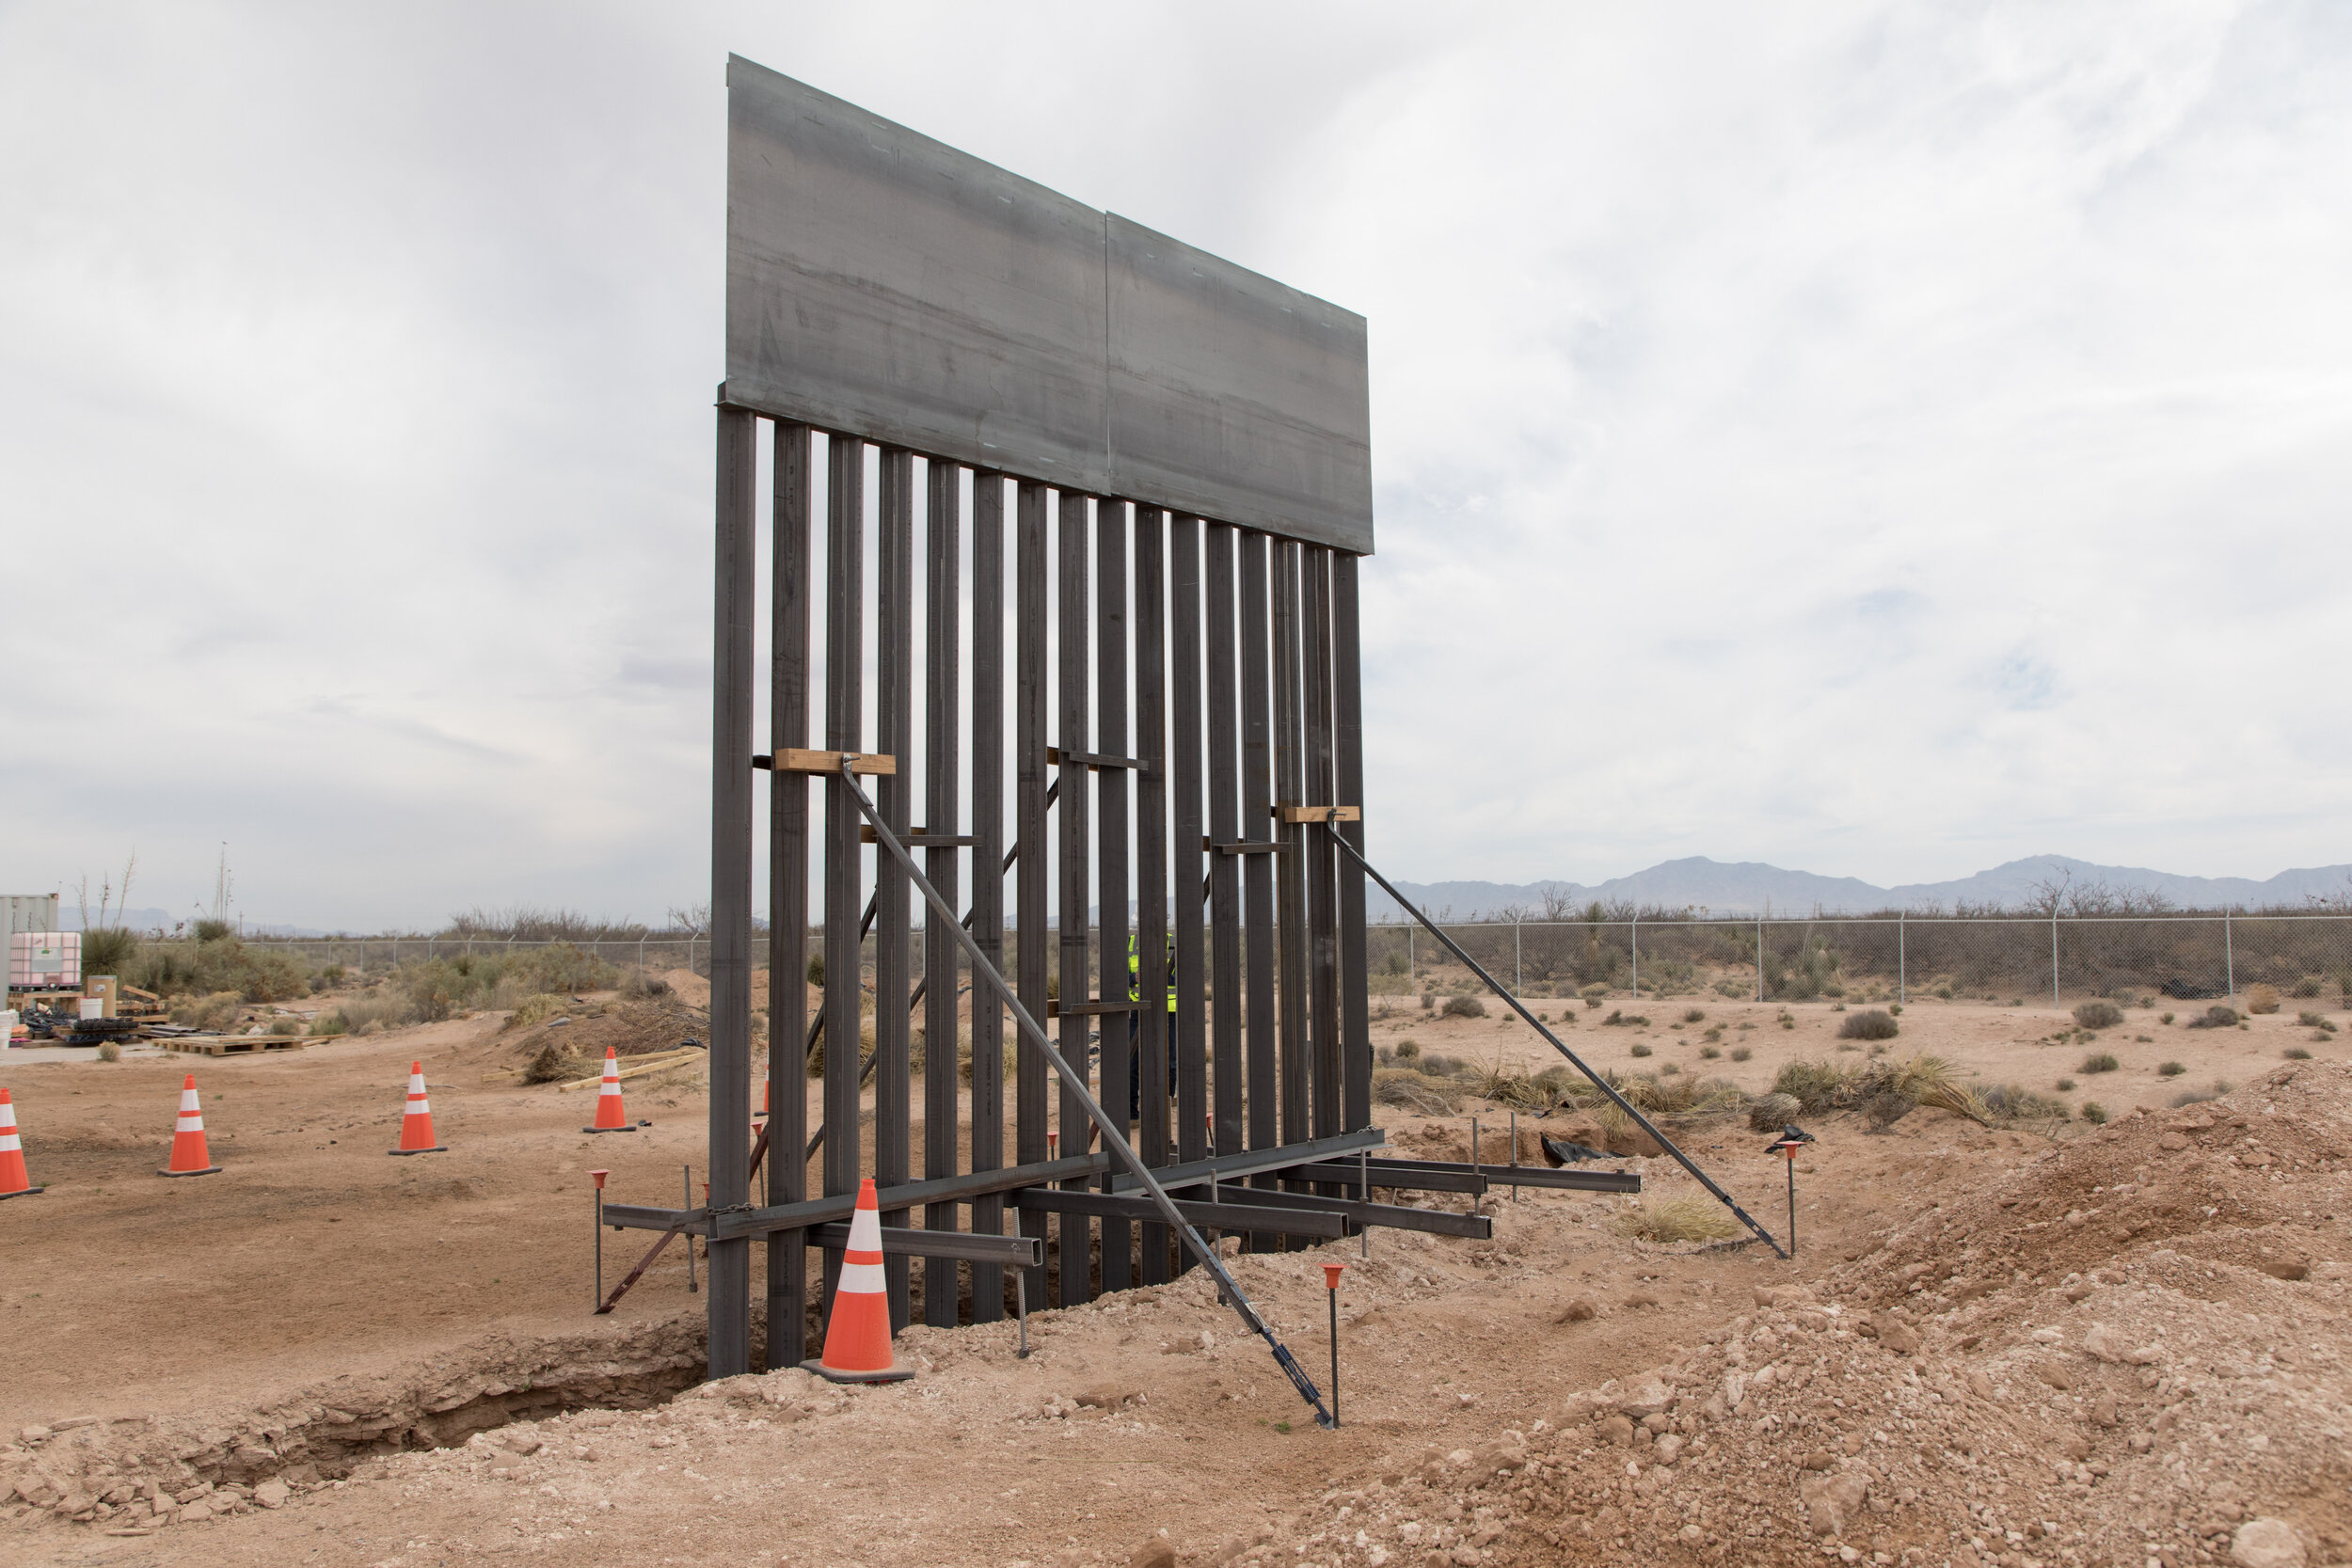 construction-staging-area-for-the-santa-teresa-border-wall-replacement-project_26466111327_o.jpg